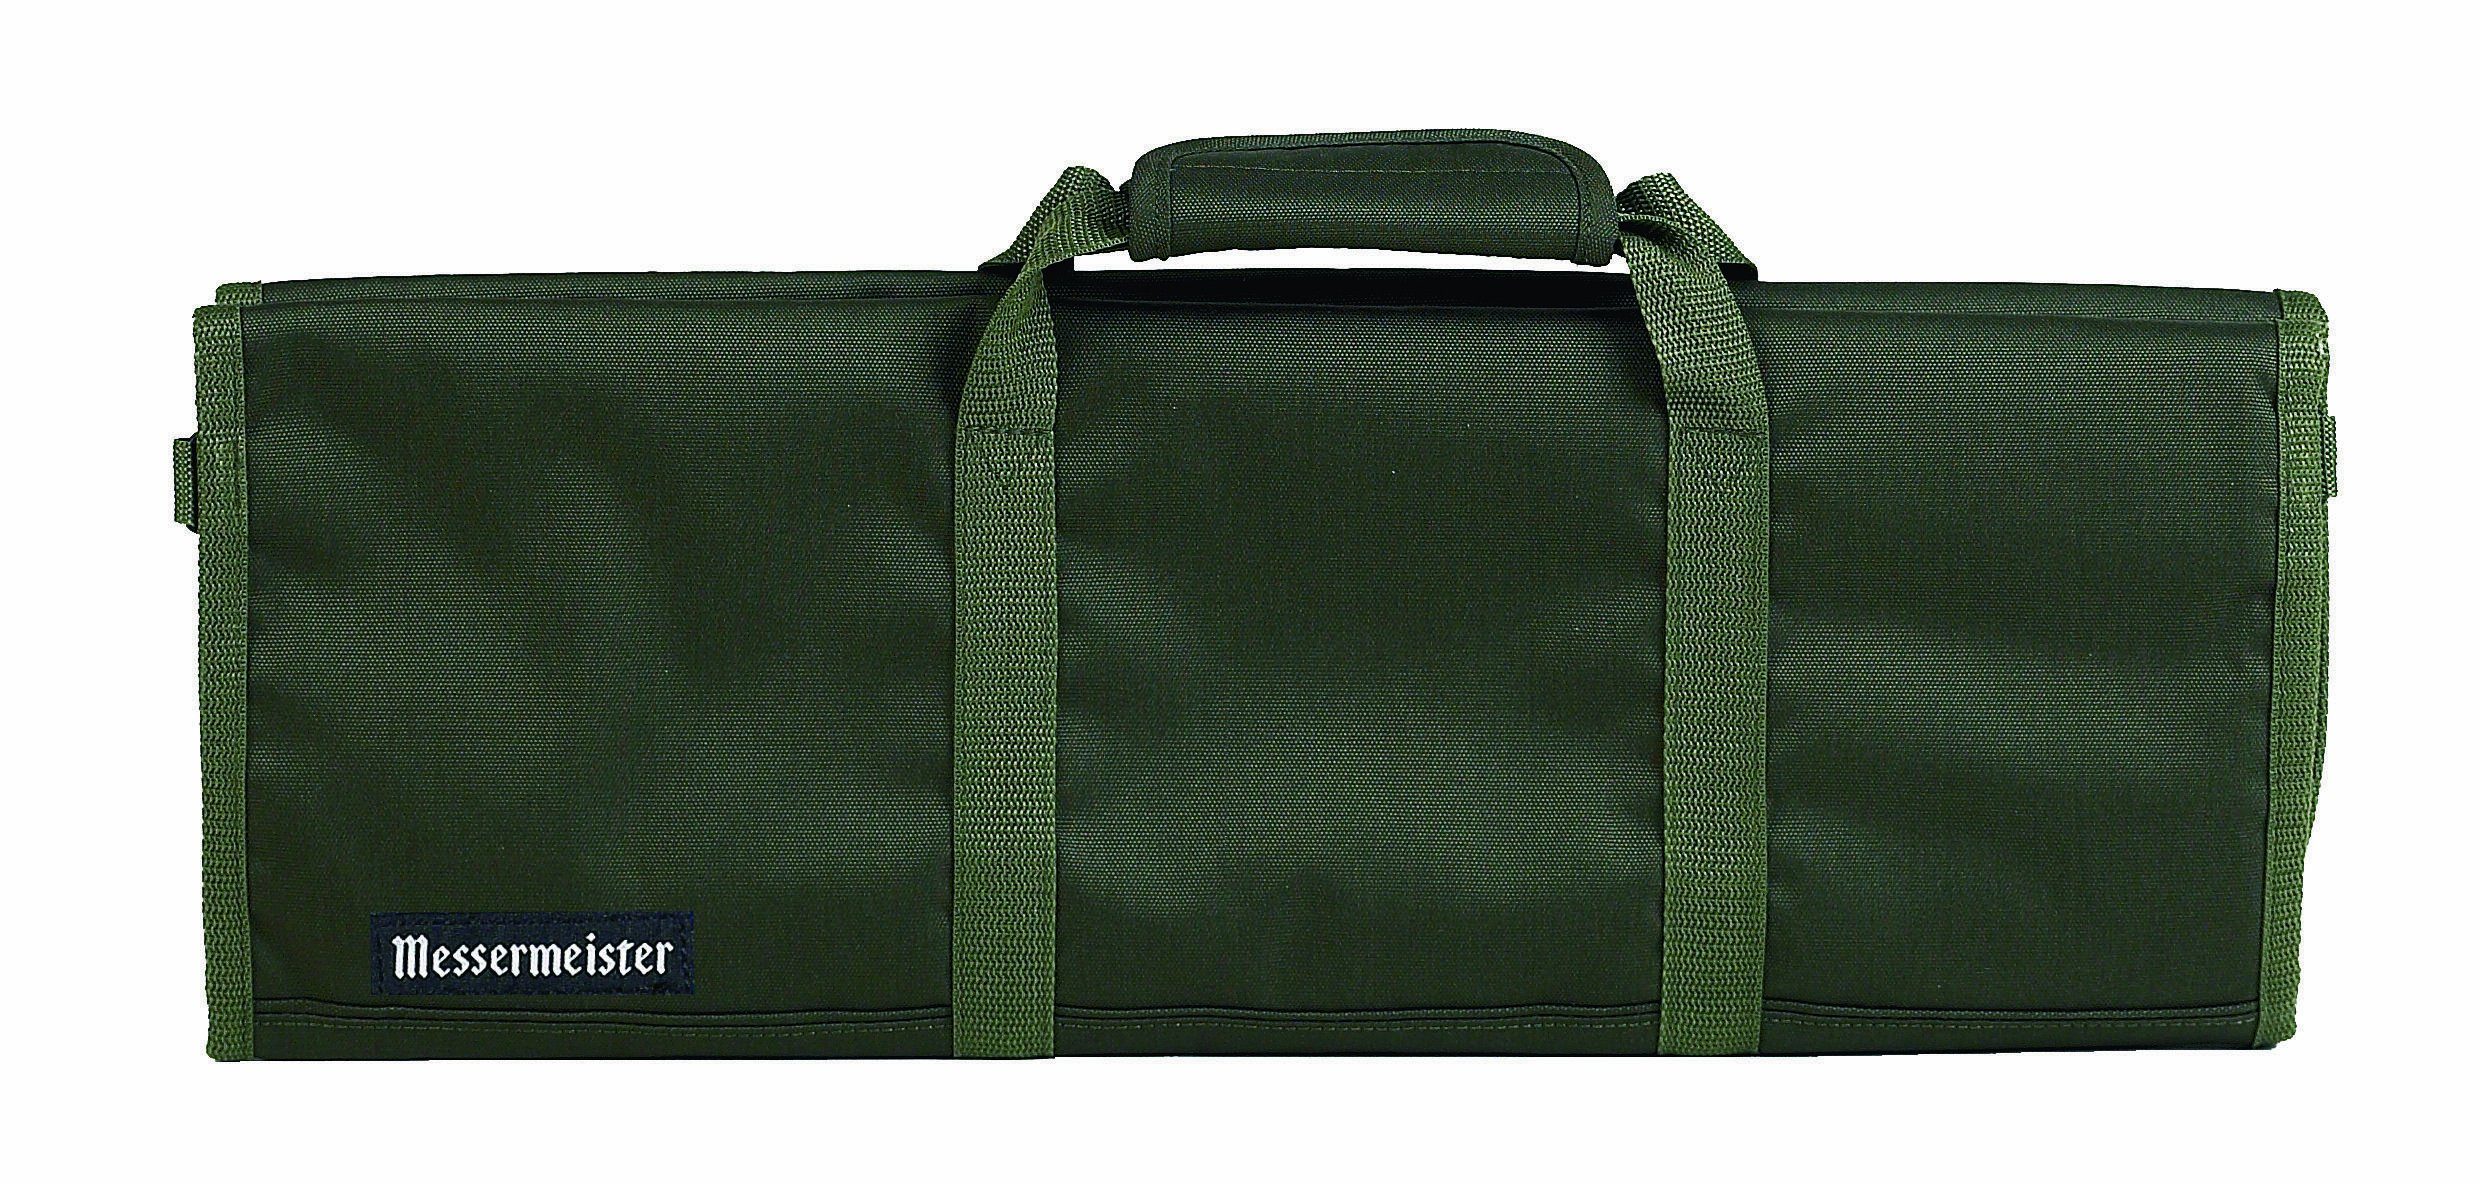 Messermeister 12-Pocket Heavy Duty Nylon Padded Knife Roll, Luggage Grade and Water Resistant, Olive by Messermeister